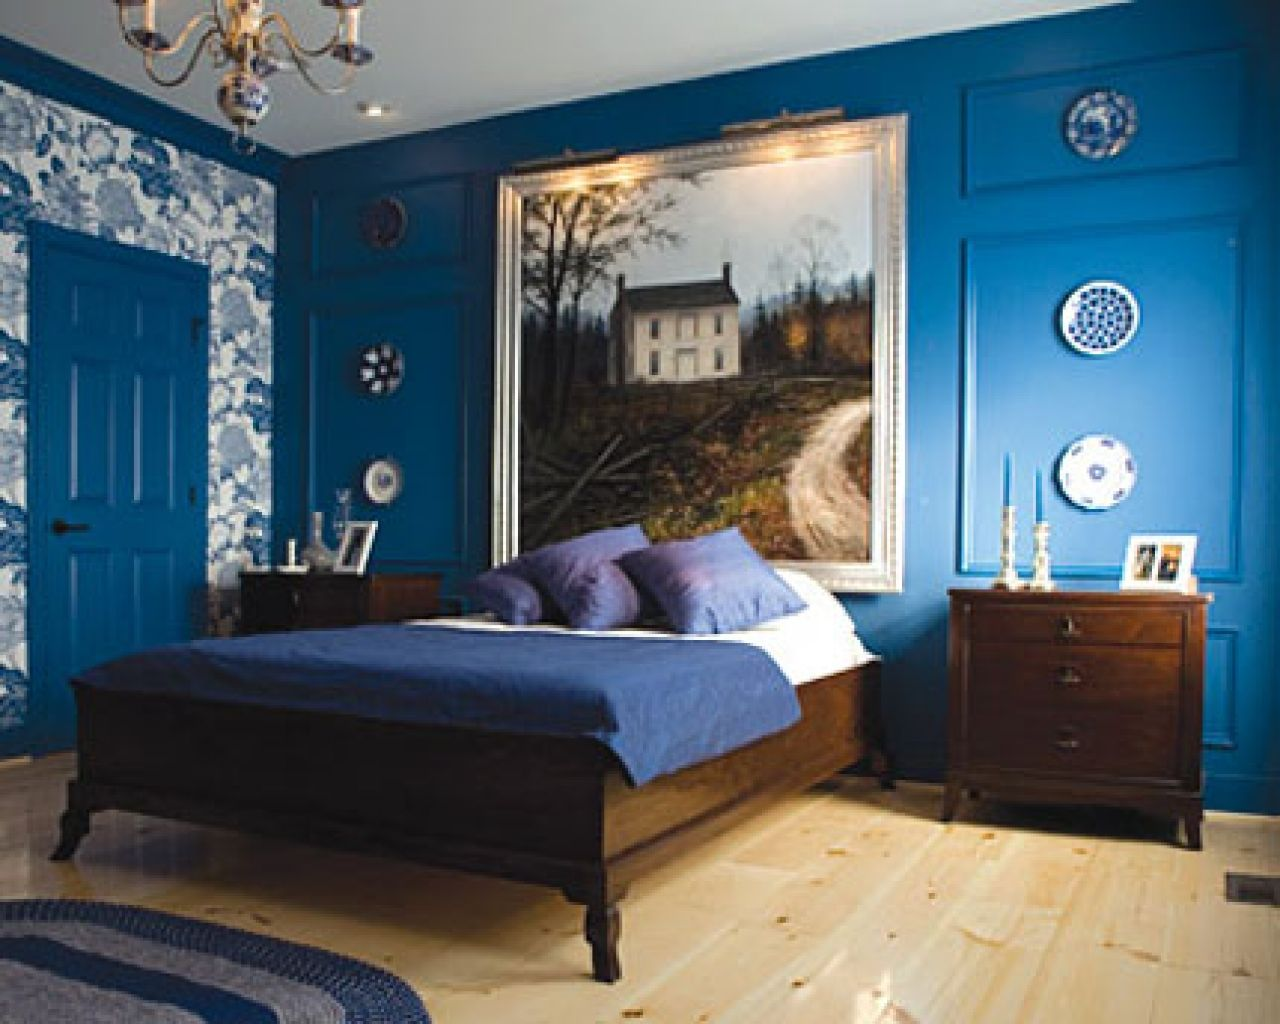 How To Paint A Bedroom Wall Beauteous Design Decoration